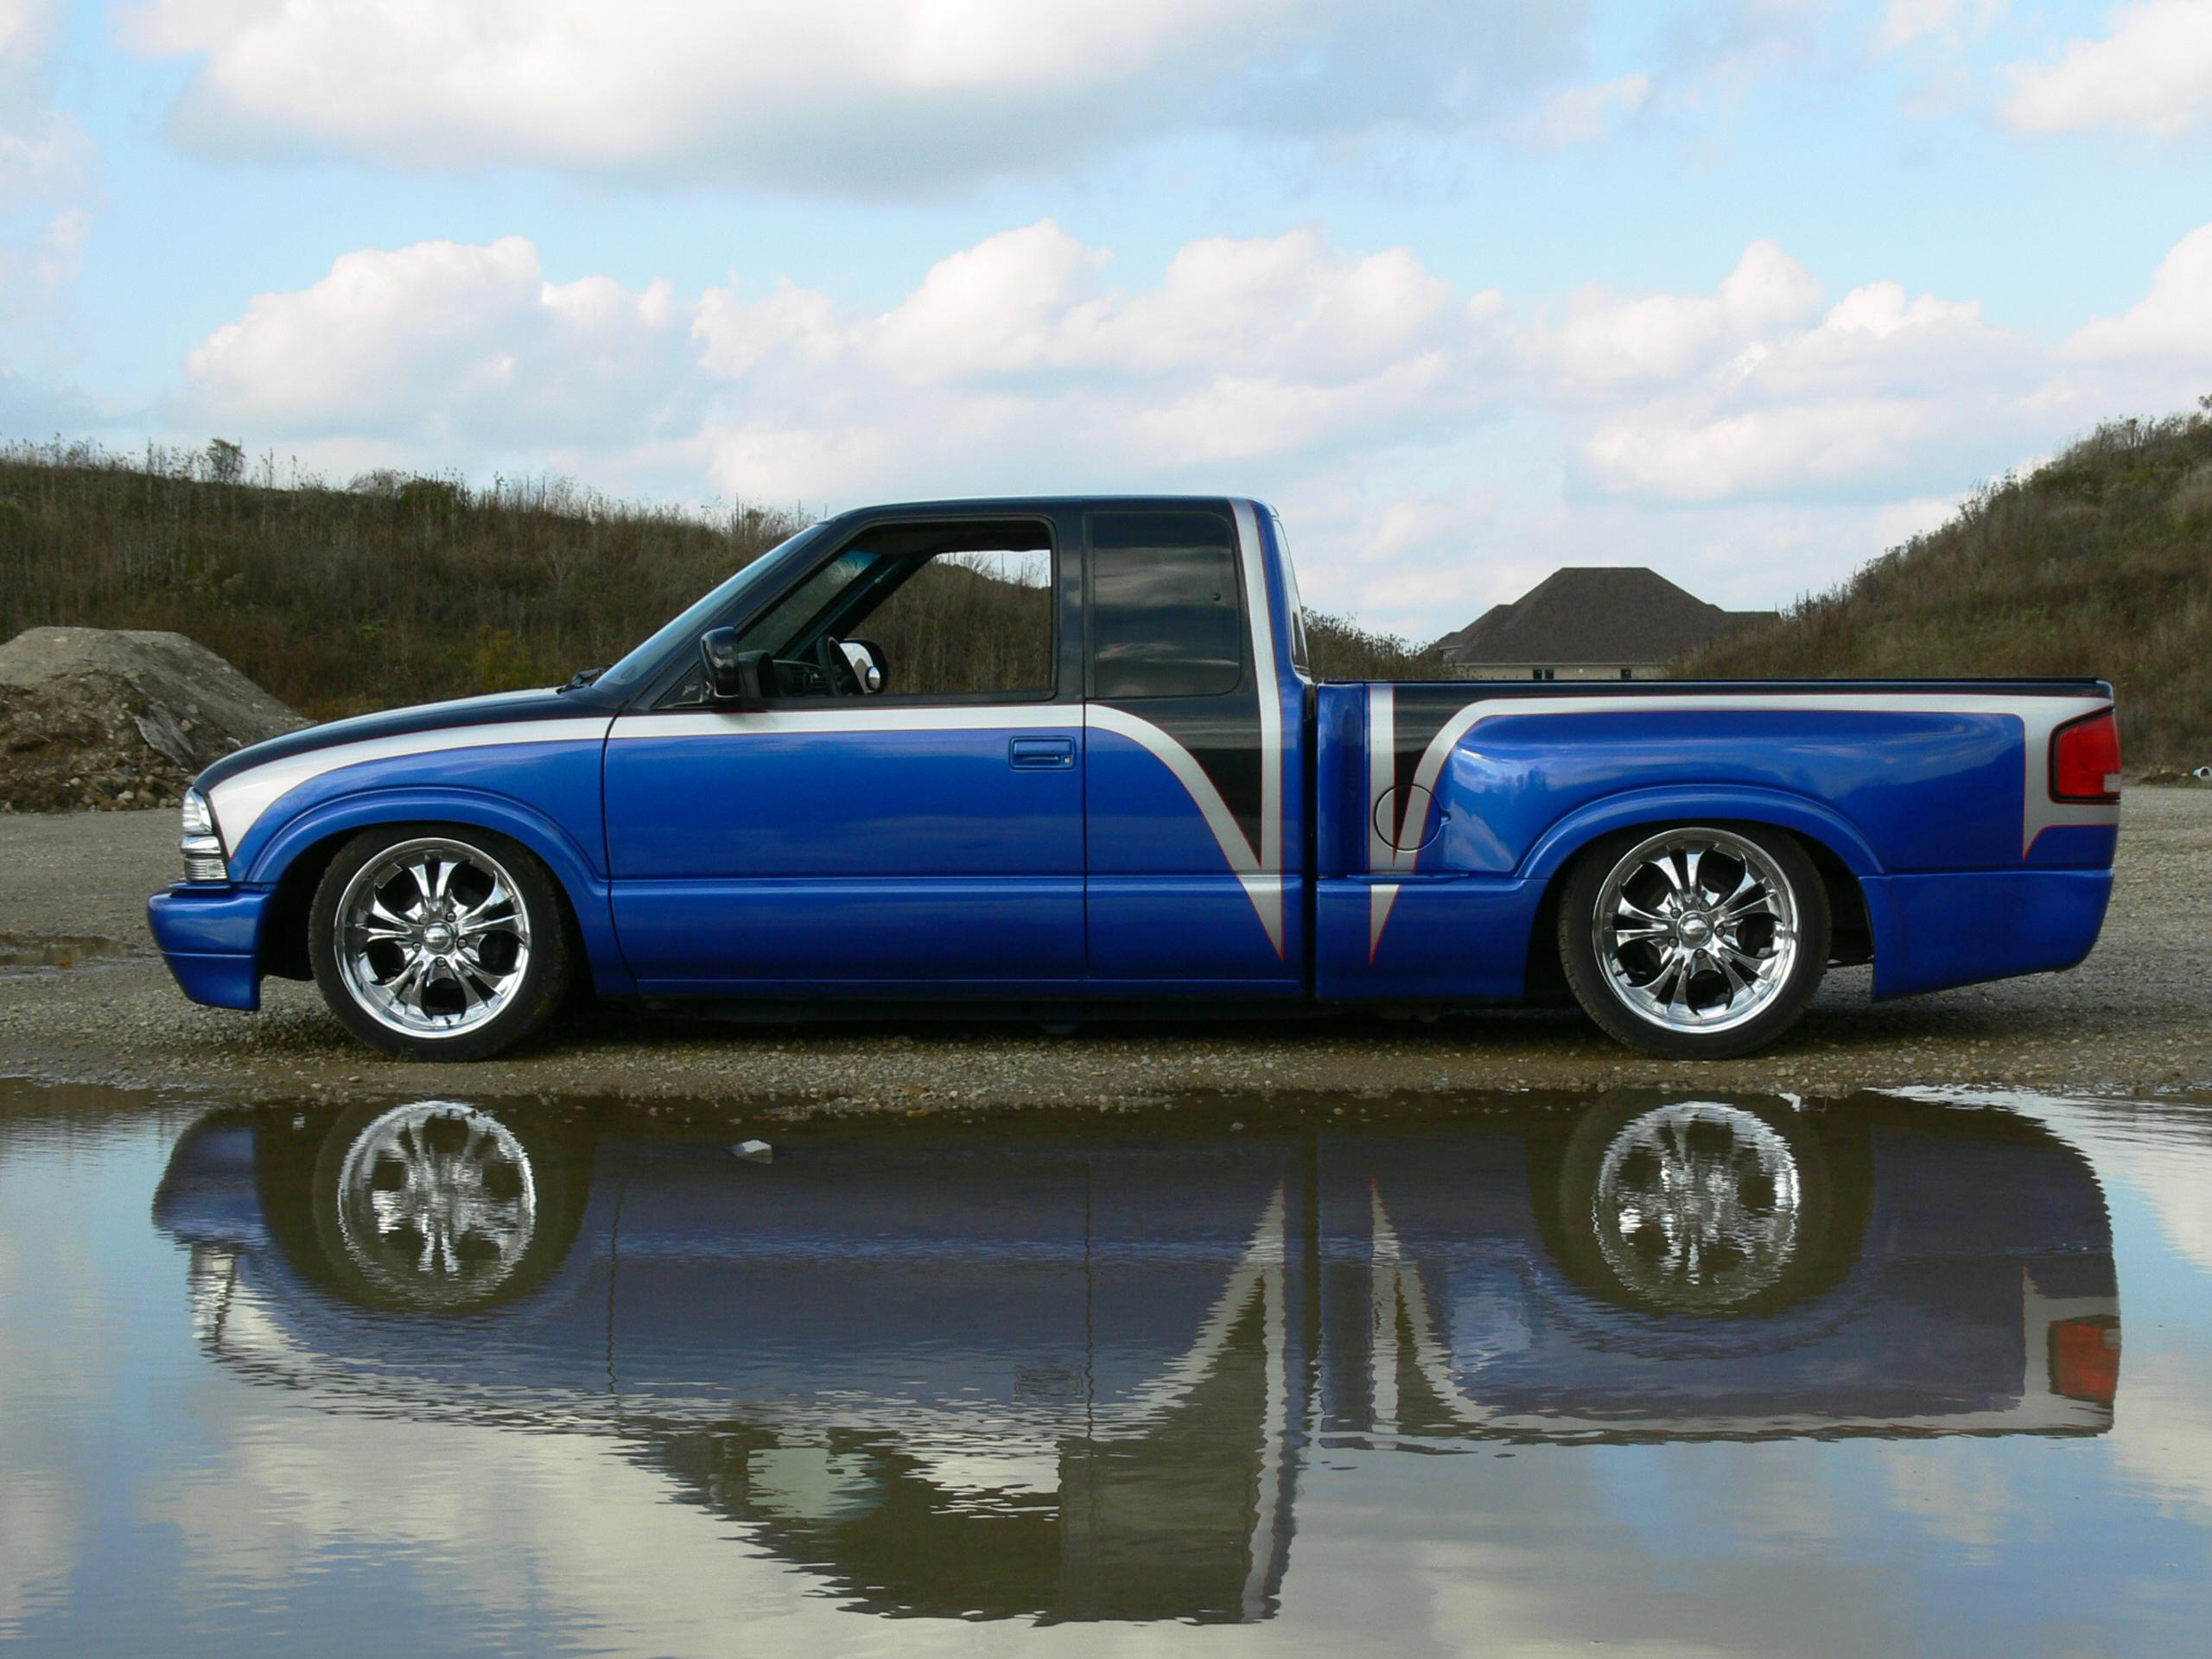 Low Life Customs's 2000 Chevrolet S10 Regular Cab